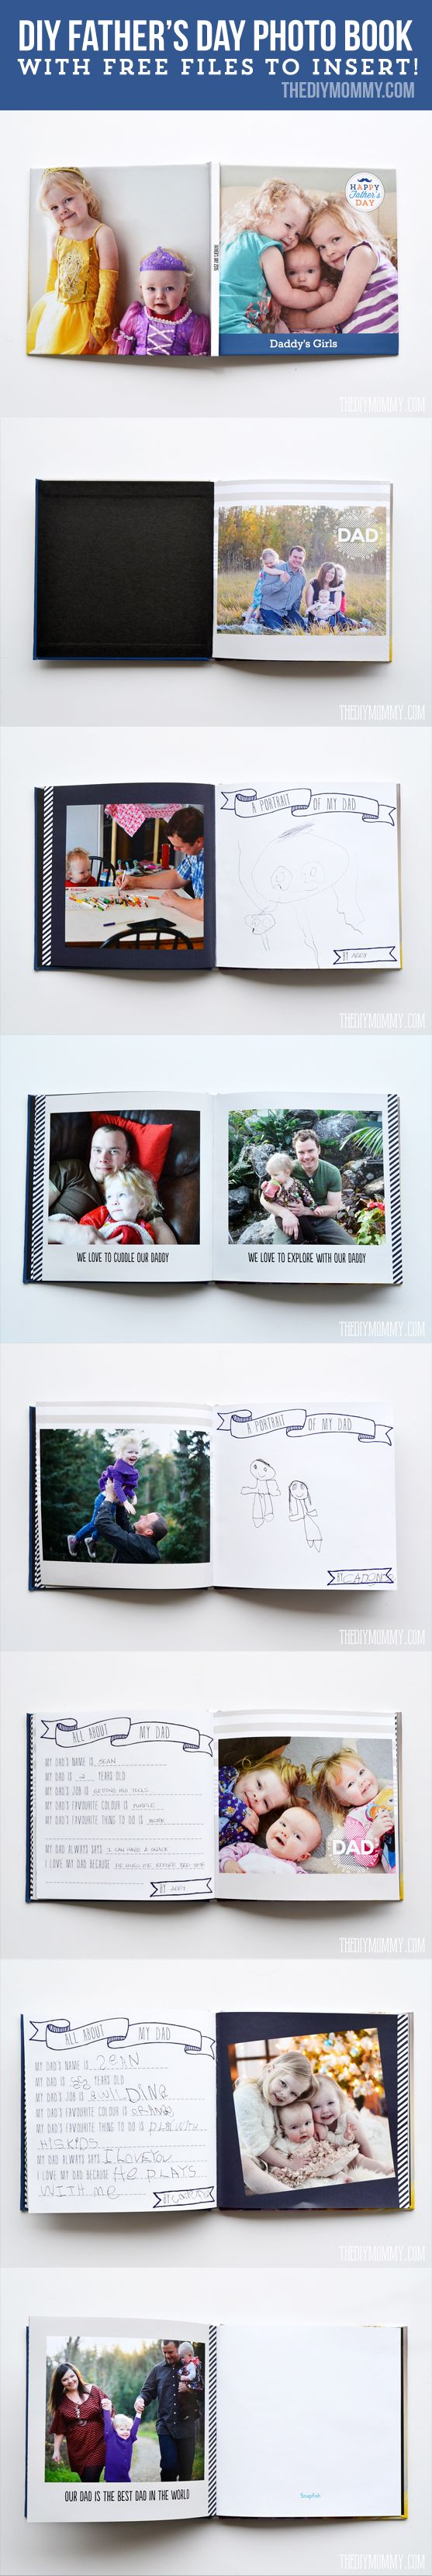 An adorable Father's Day gift idea: a photo book with pages the kids can fill in + a custom mug full of his favourite treats! #snapfishbloggers